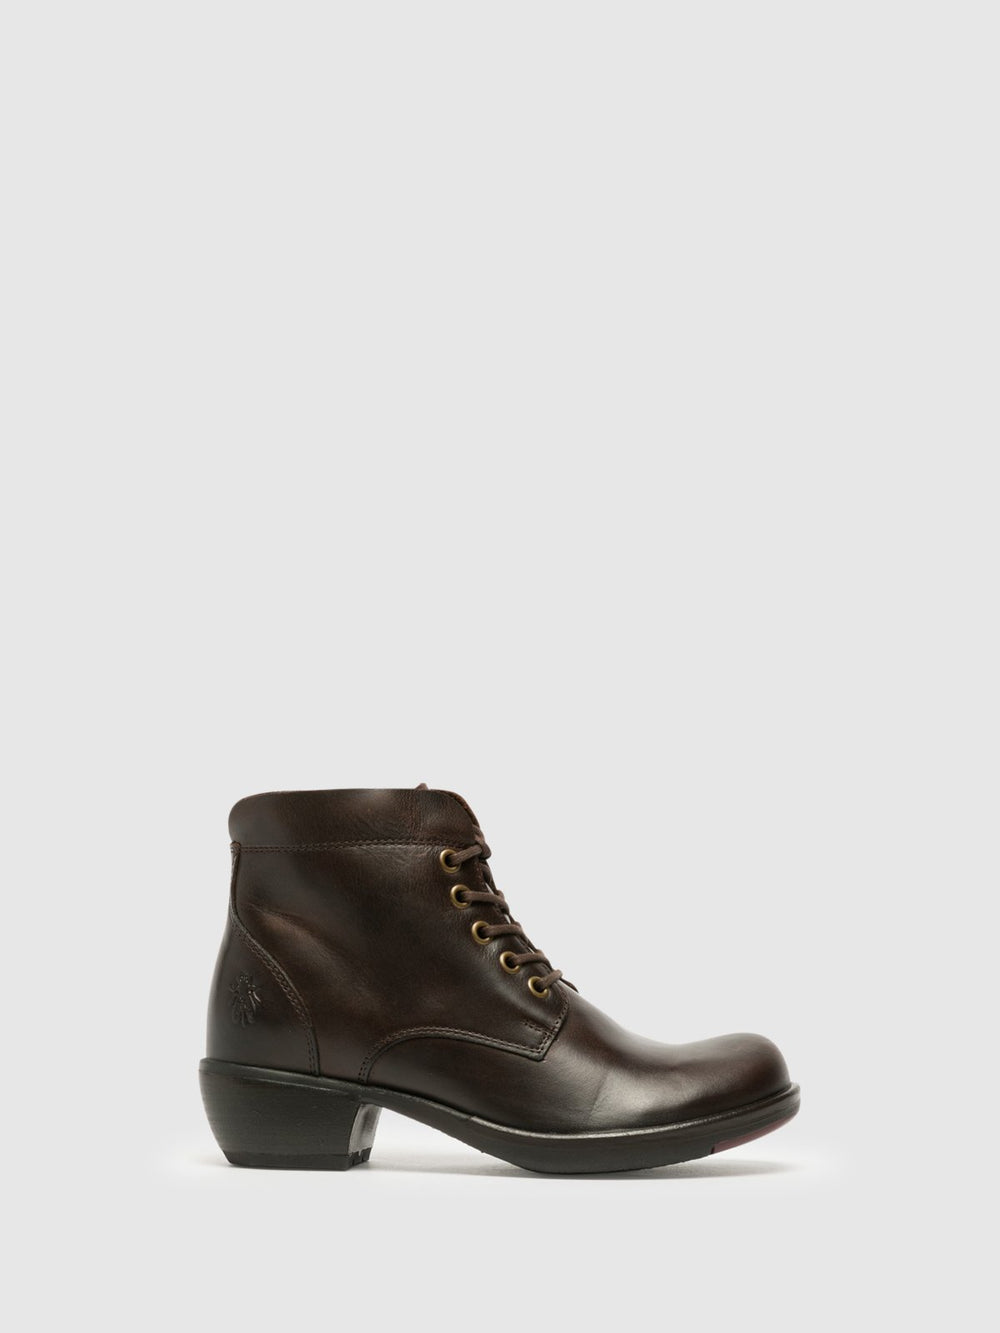 Lace-up Ankle Boots MESU780FLY DK. BROWN